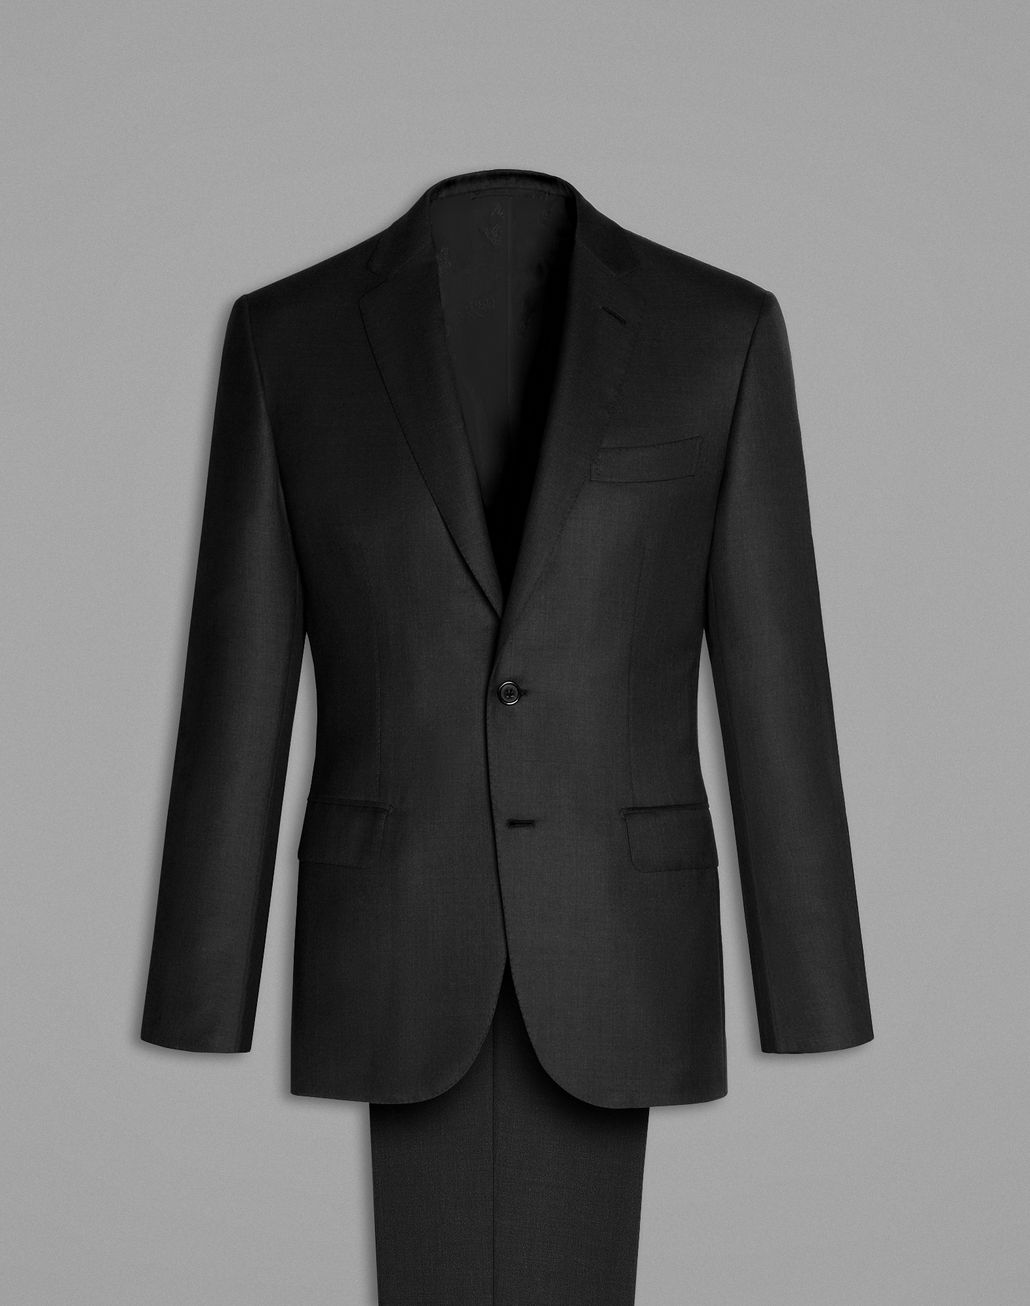 BRIONI Abito Madison Nero Suits & Jackets Uomo f